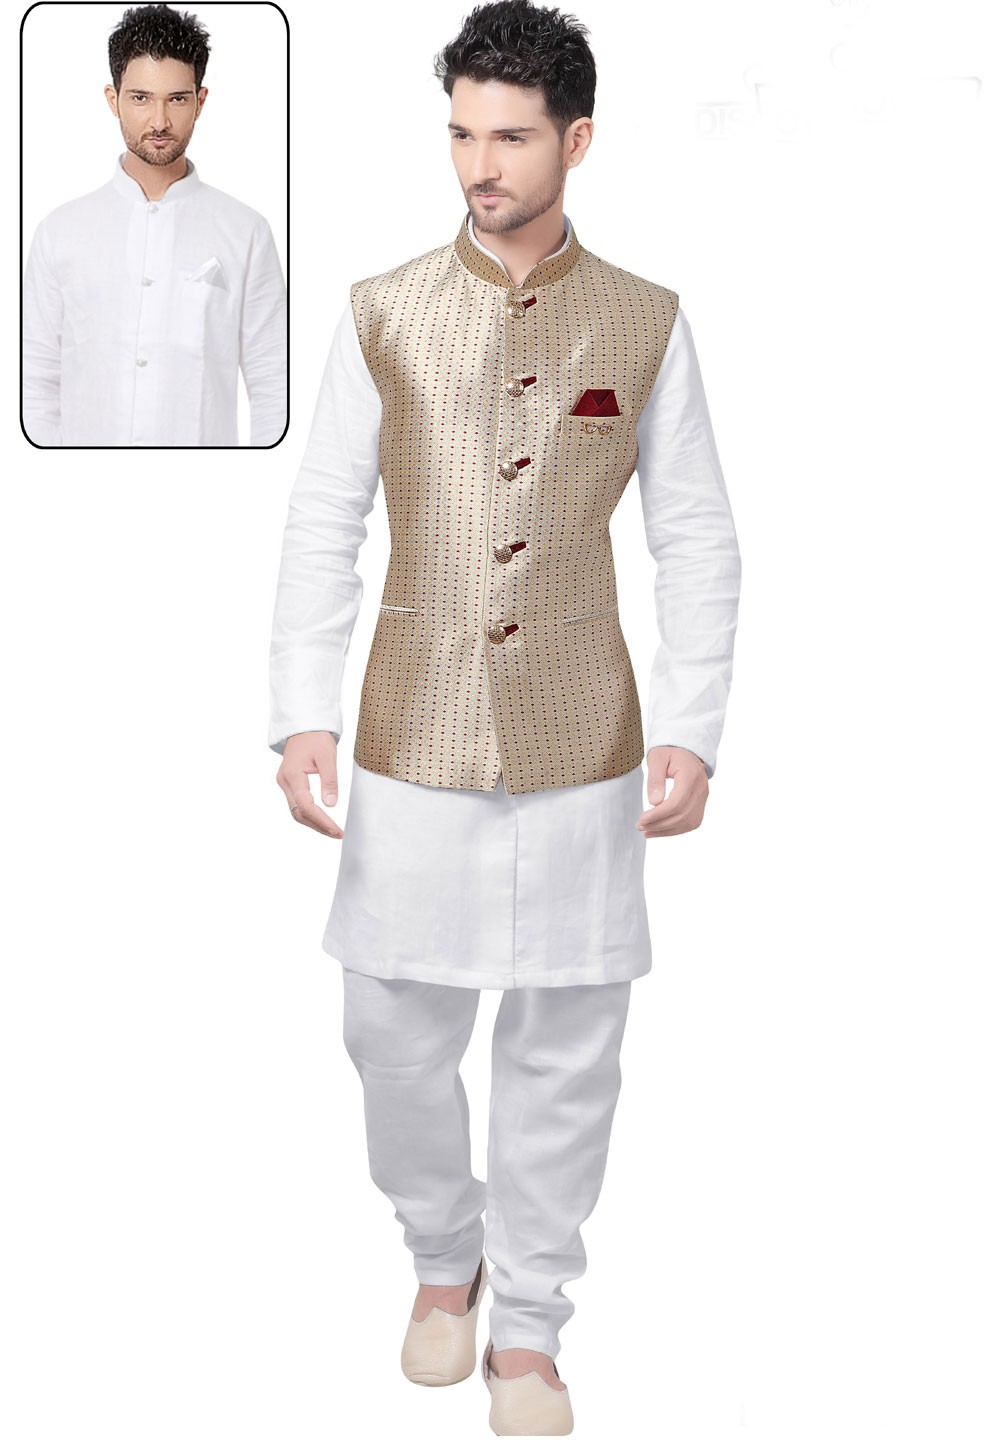 Exquisite White,Beige Color Readymade Latest Kurta Pajama with Nehru Jacket